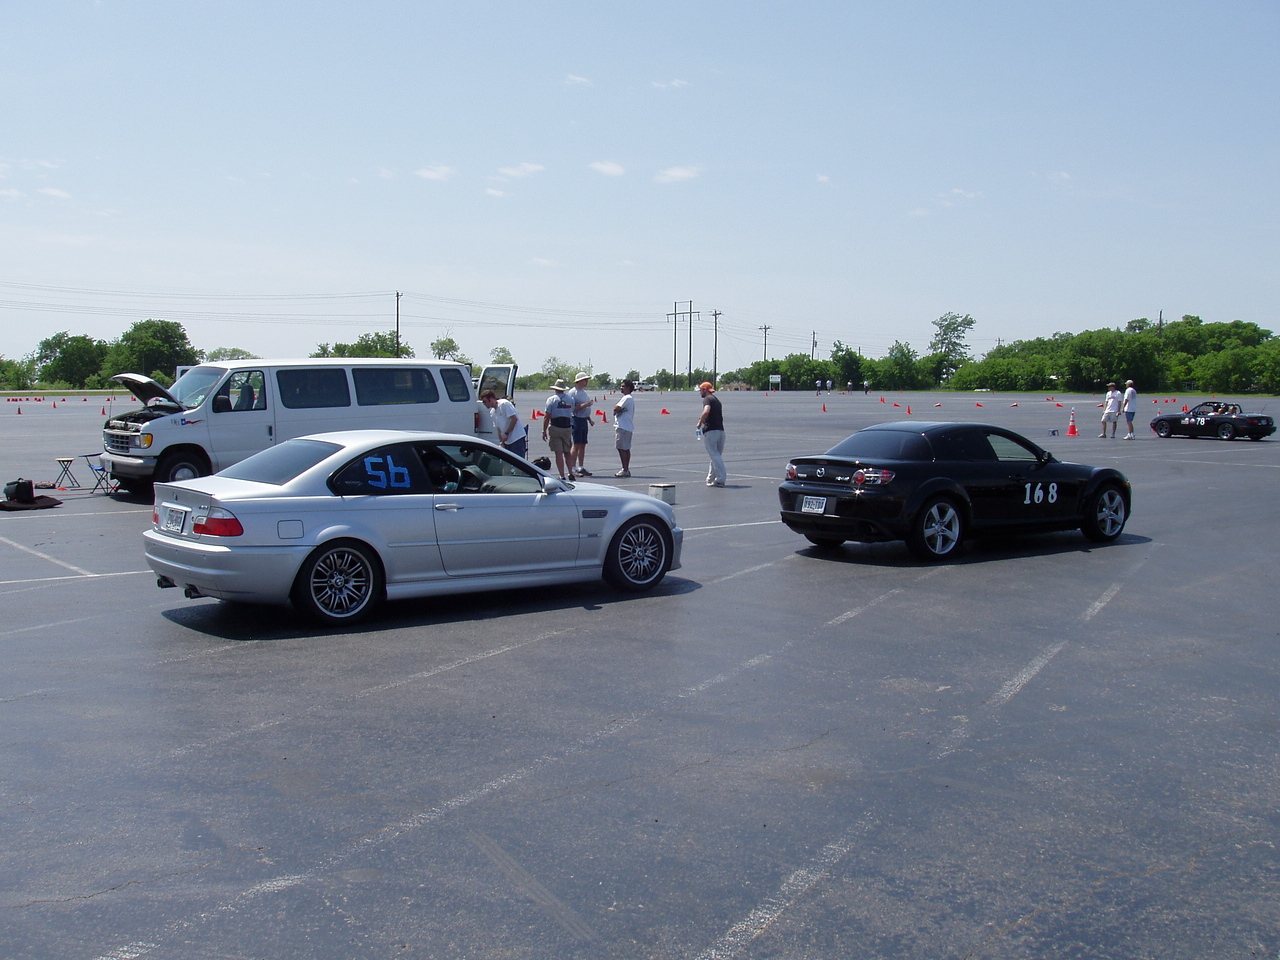 E46 M3 and RX-8